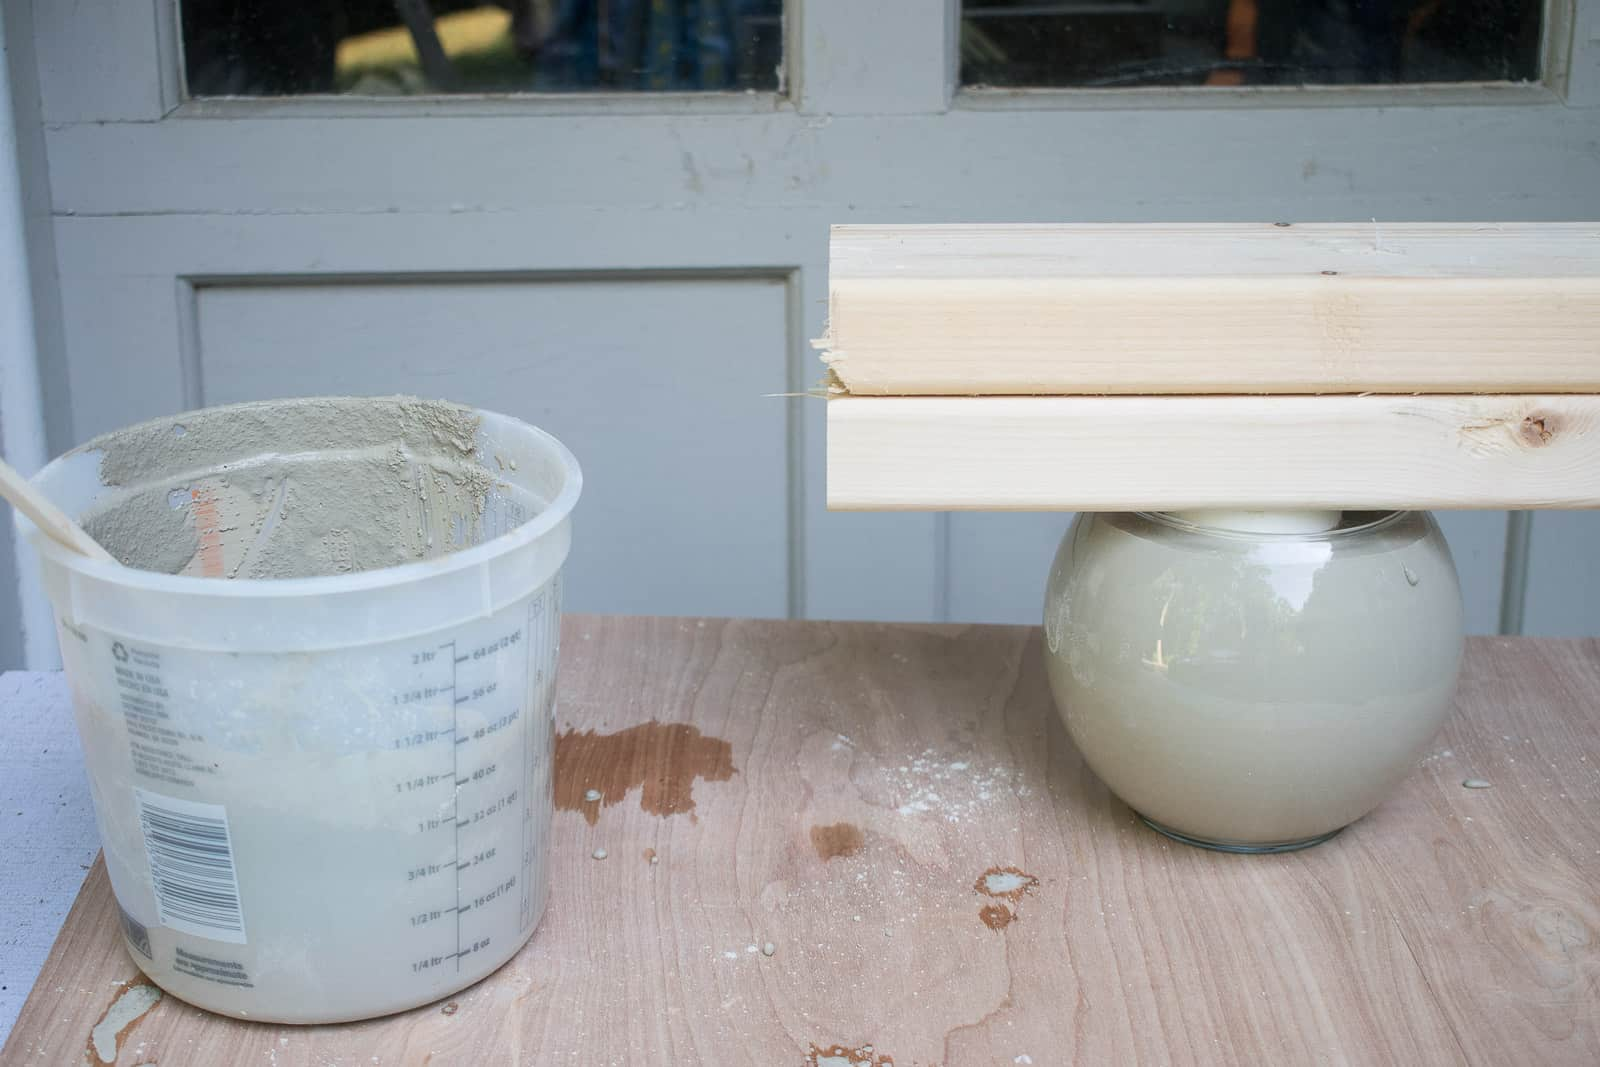 pour cement into glass mold